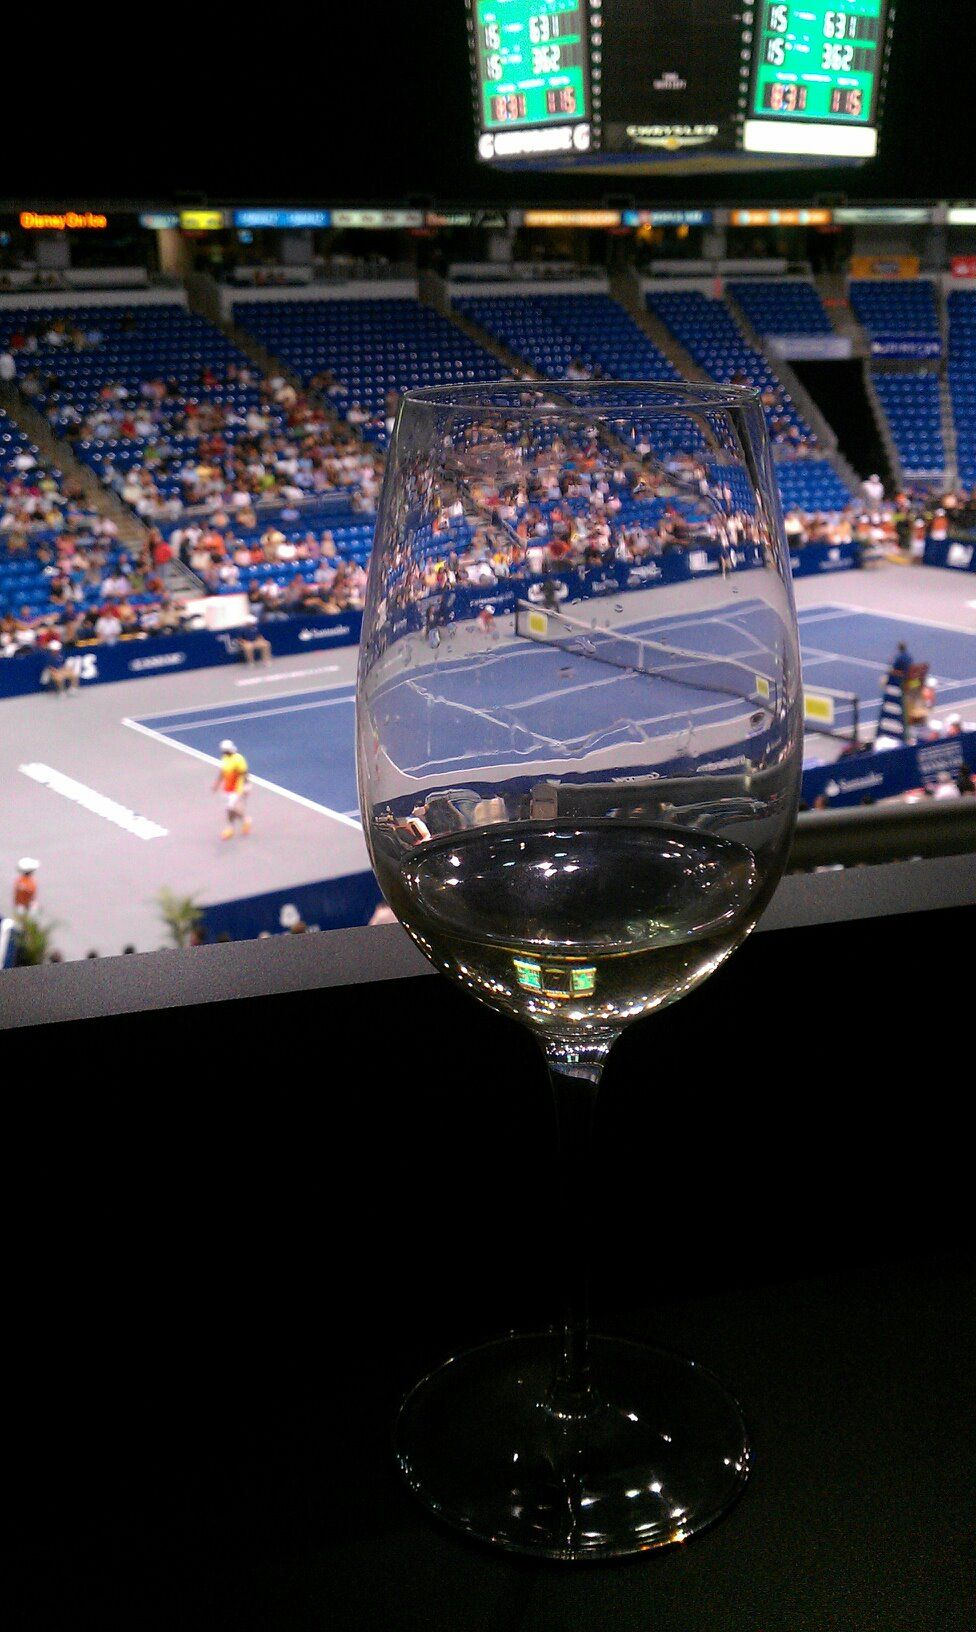 Puerto Rico Tennis Cup @ Oriental Bank Suite in the Choliseo of Puerto Rico. Wine & Tennis, life is GOOD!!!